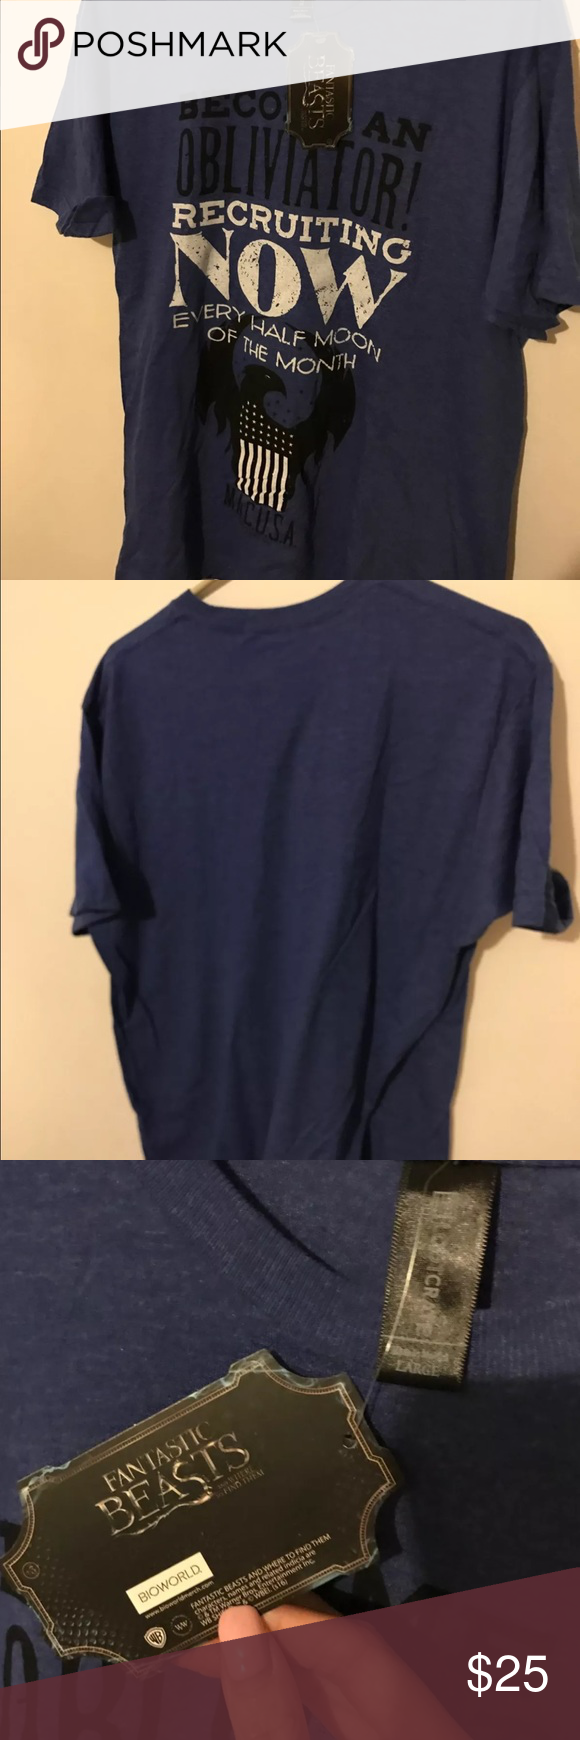 Fantastic Beasts Loot Crate shirt Brand new! 🌼Thank you for looking!  🌼I ship within 2 days shipping excluding holidays 🌼I do not trade! 🌼I only accept offers through the offer button! 🌼Thank you for shopping and feel free to ask any questions! Loot Crate Shirts Tees - Short Sleeve